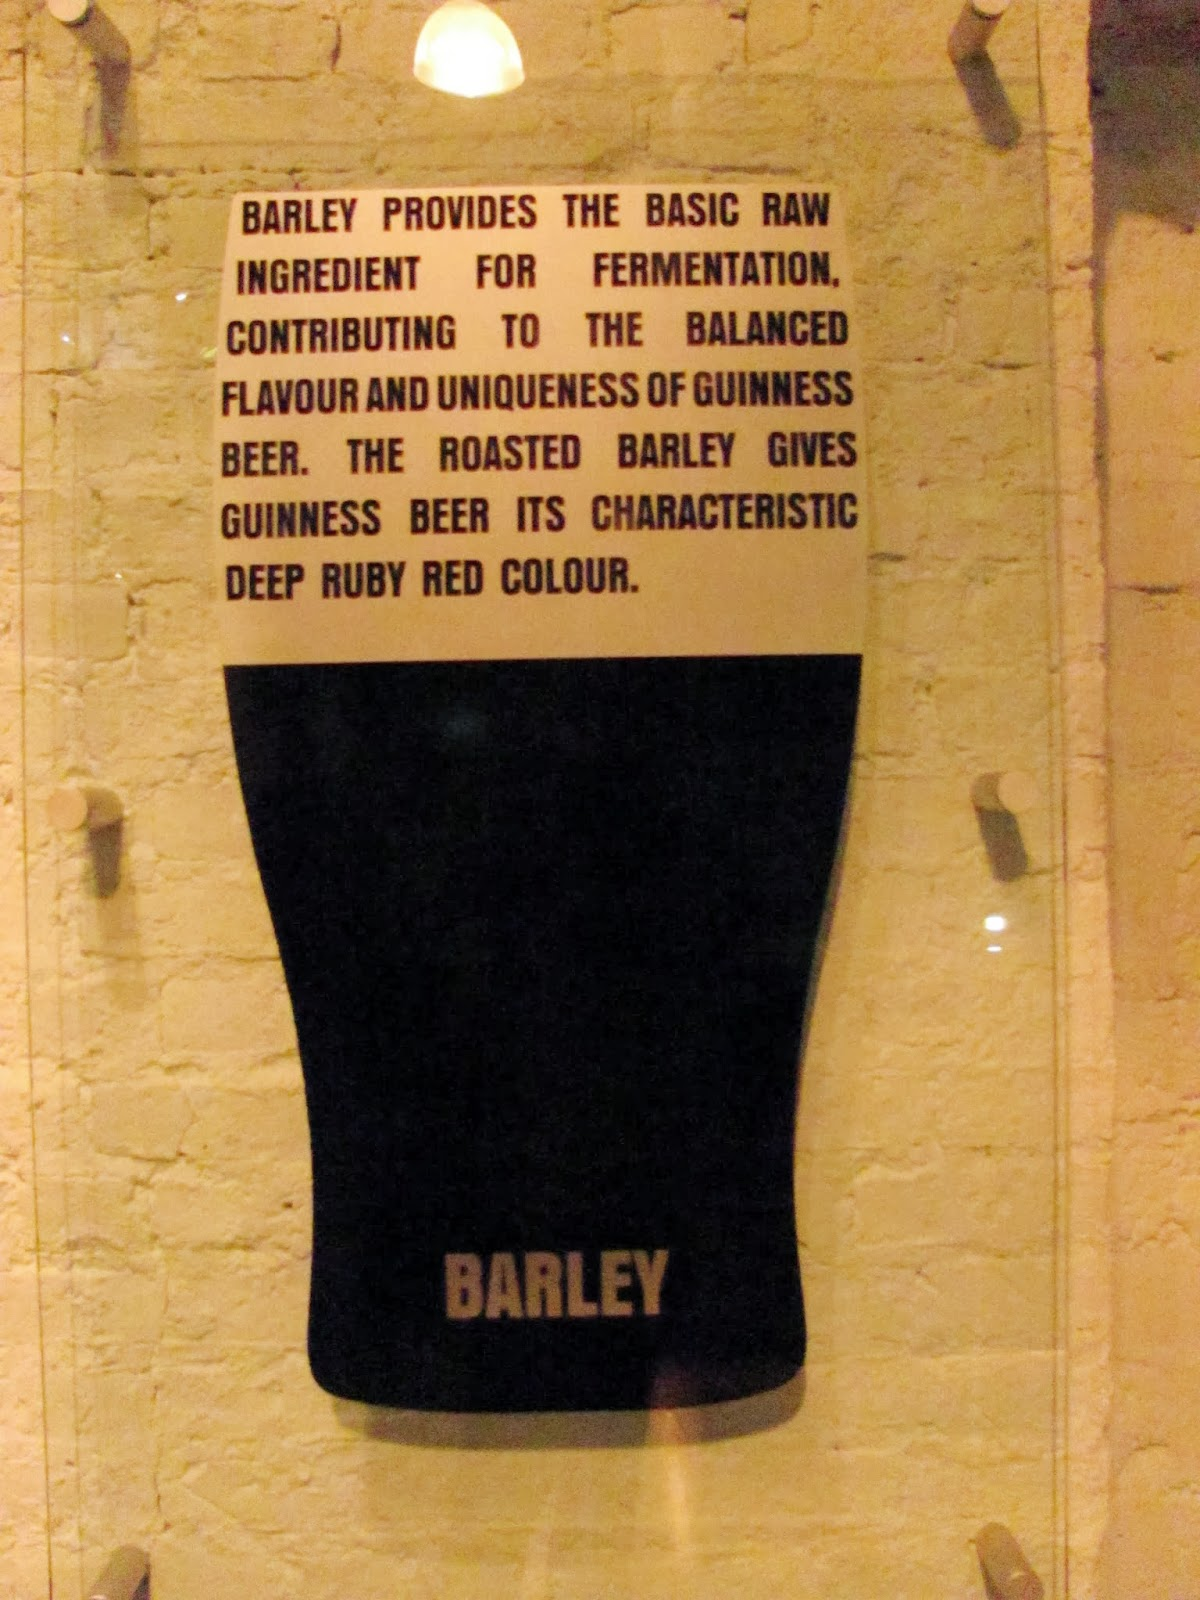 A description of the role of barley in making beer at Guinness Storehouse, Dublin, Ireland